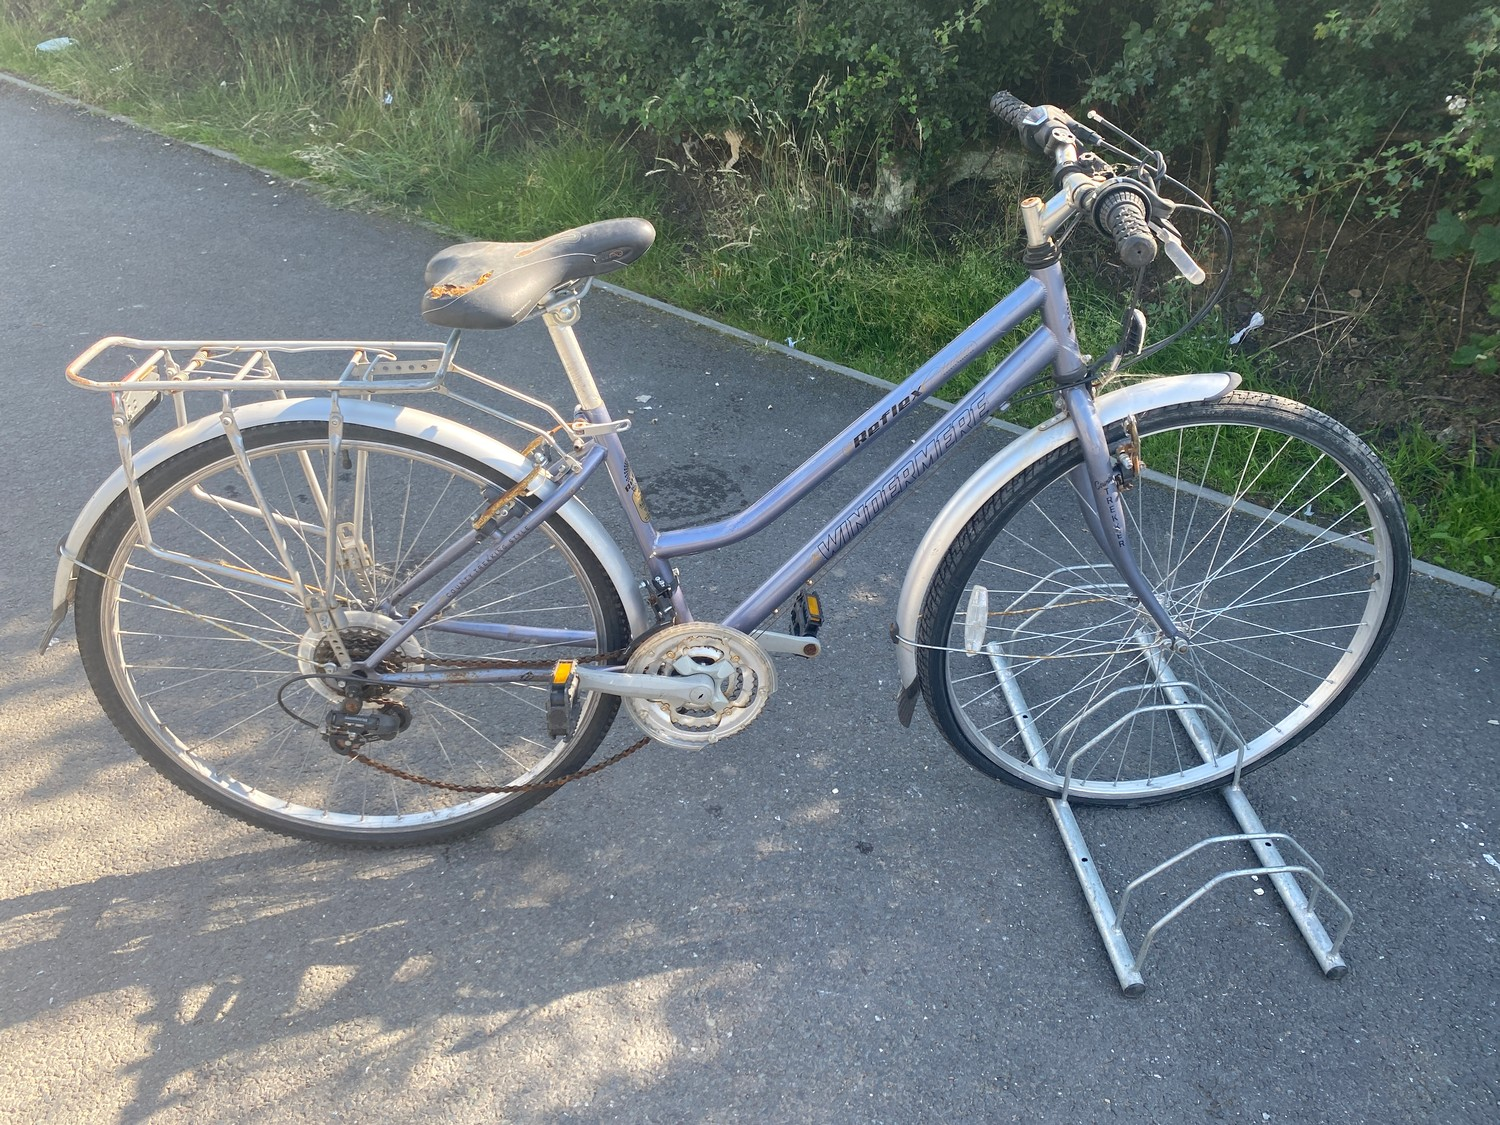 Windermere reflex ladies country bicycle - slight rip to seat